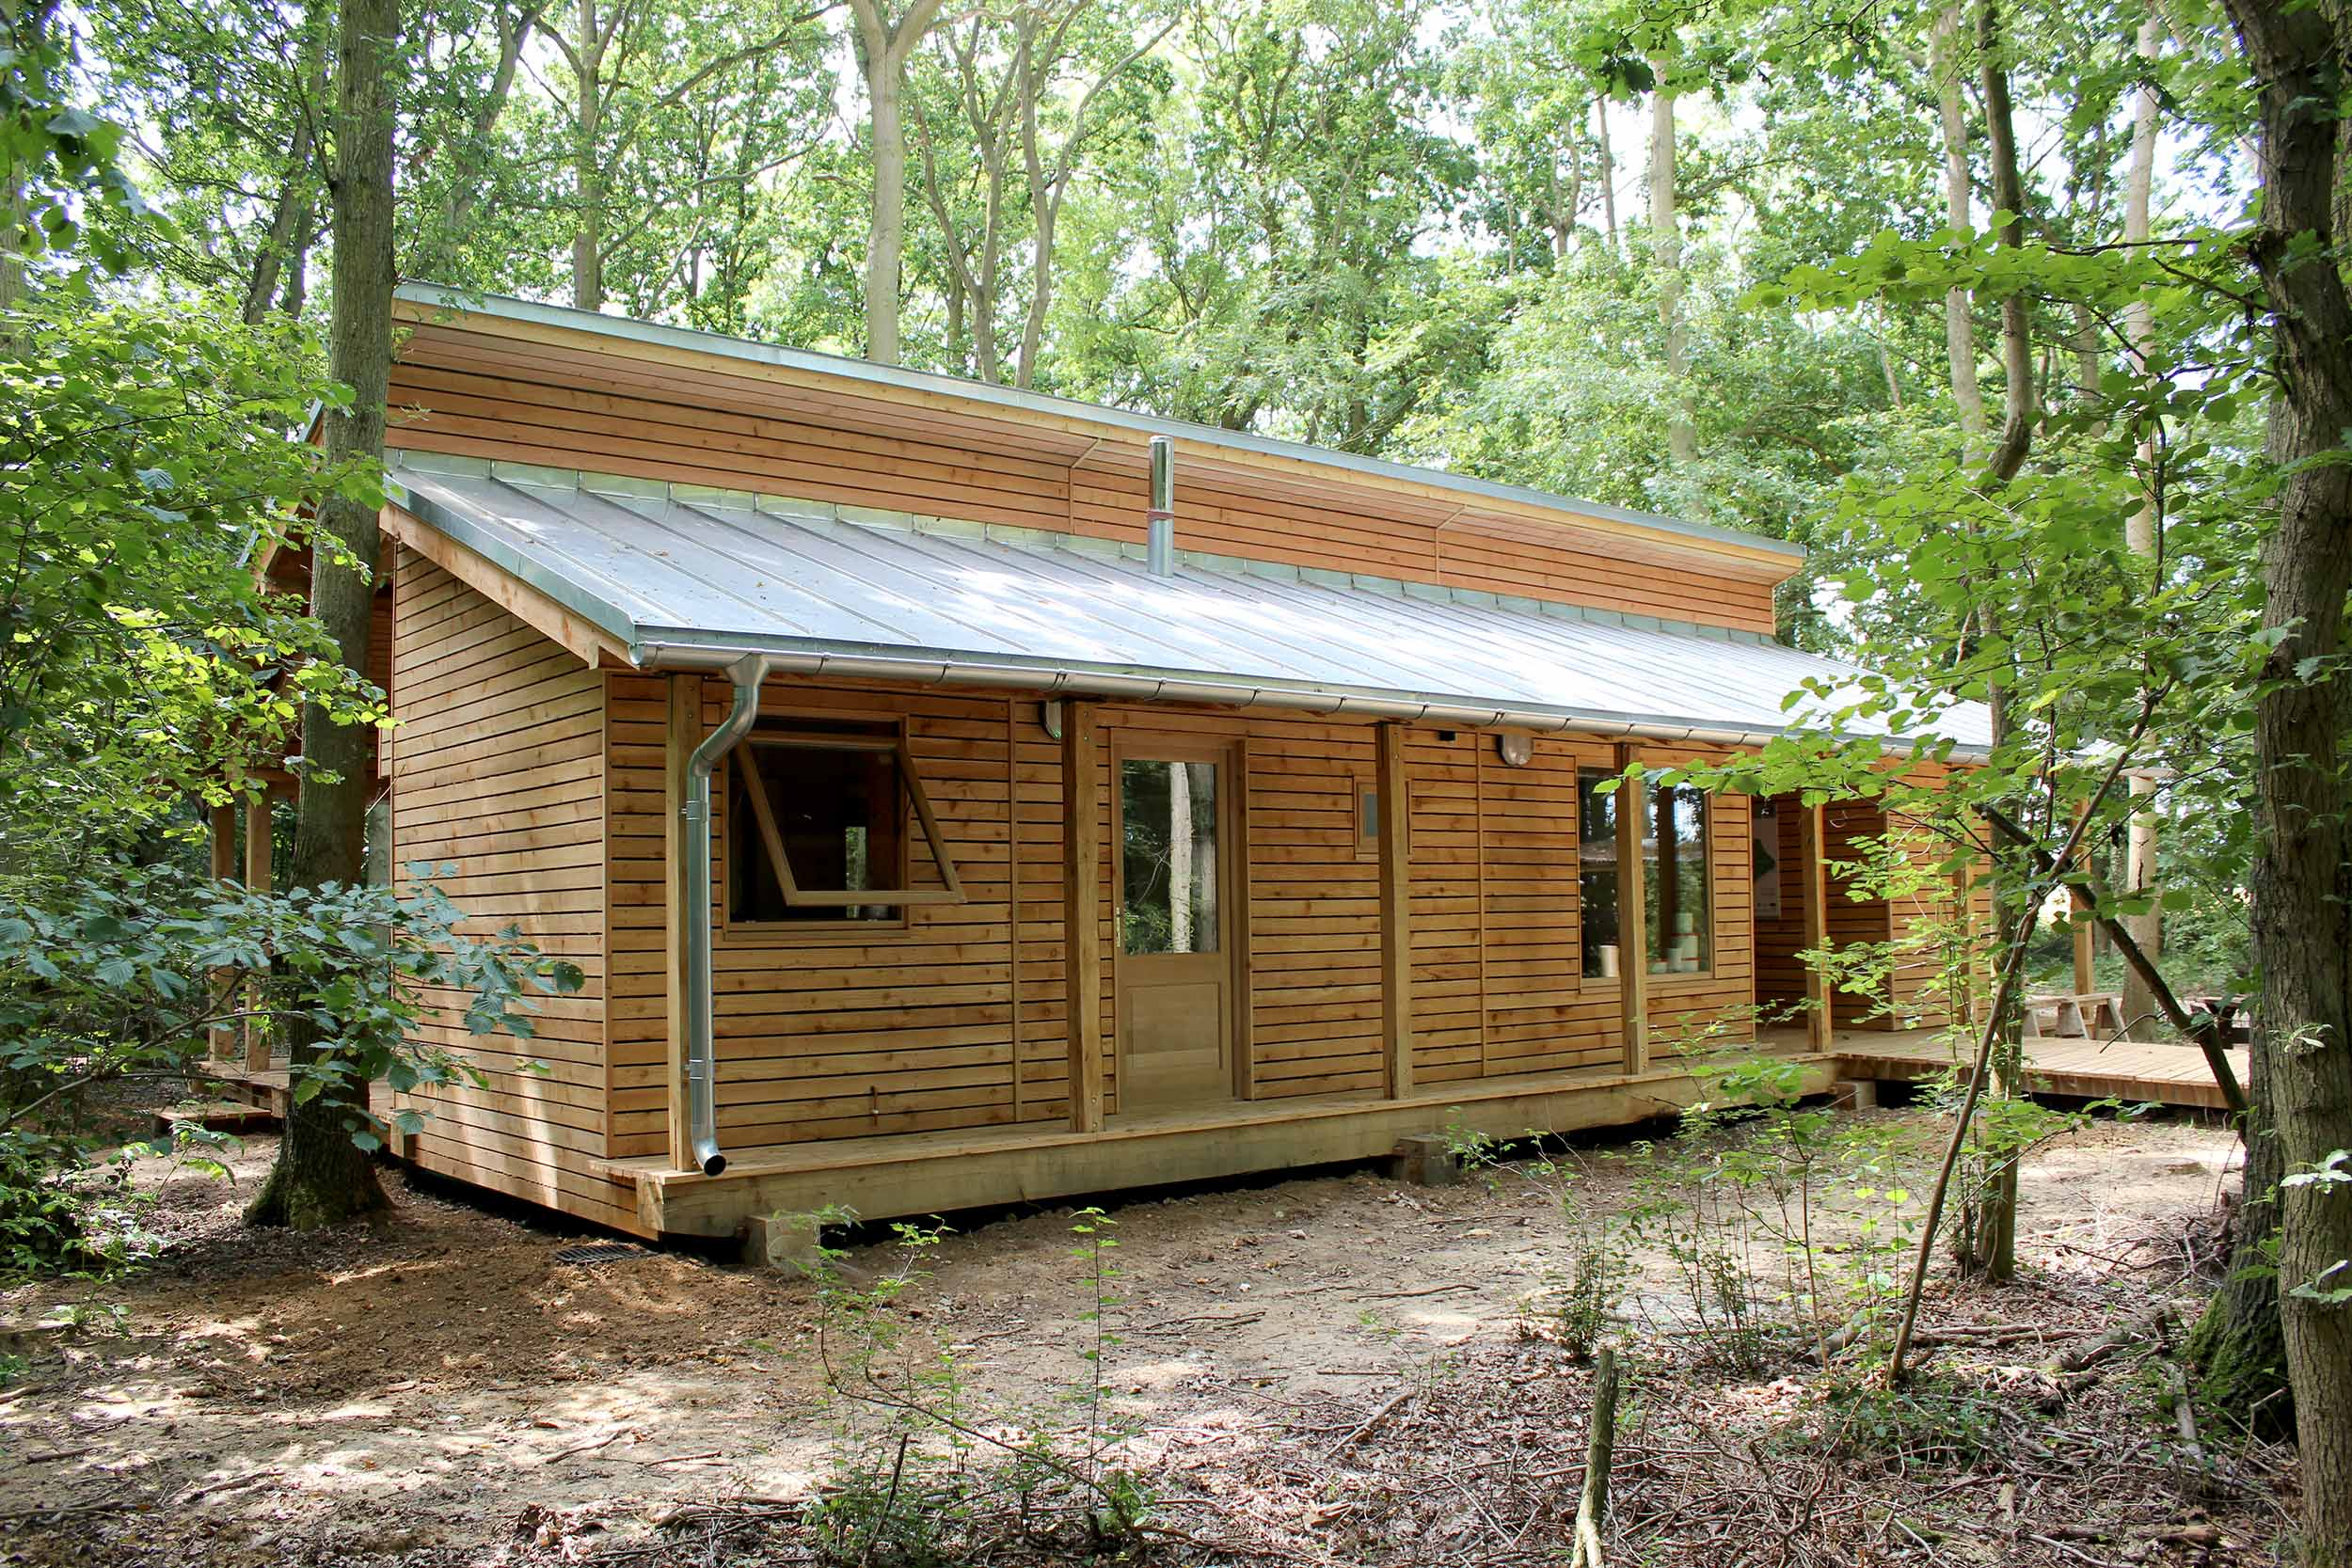 Bradfield woods visitor centre suffolk wildlife trust modece architects suffolk bury st edmunds sustainable eco